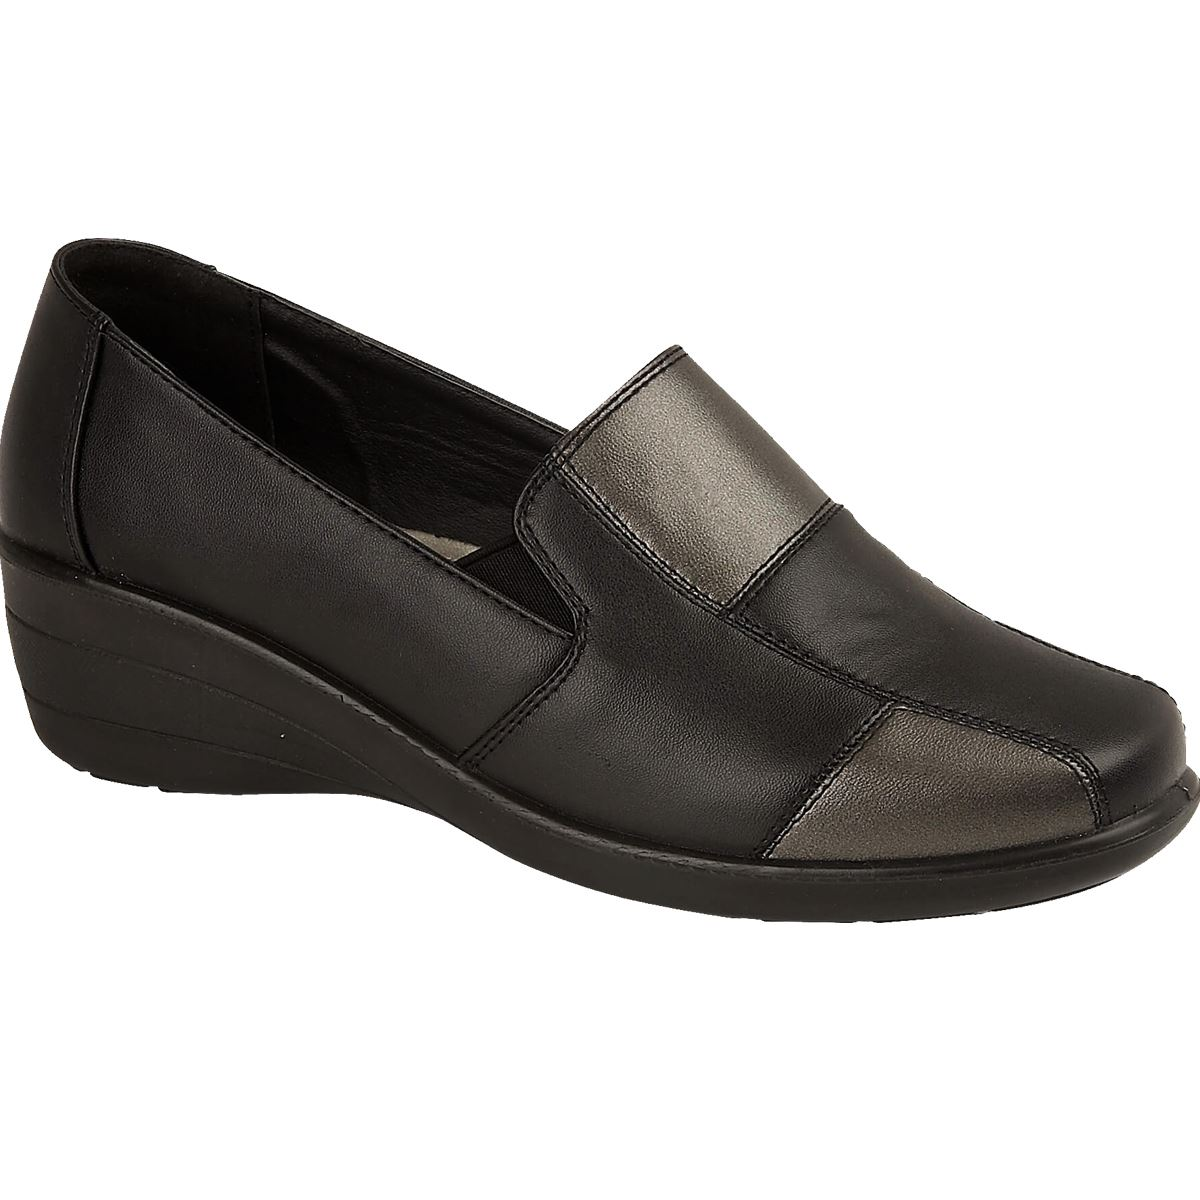 Dr Keller Sally 3 Womens Ladies Flat Black Smart Wedge Loafer For All Occasions